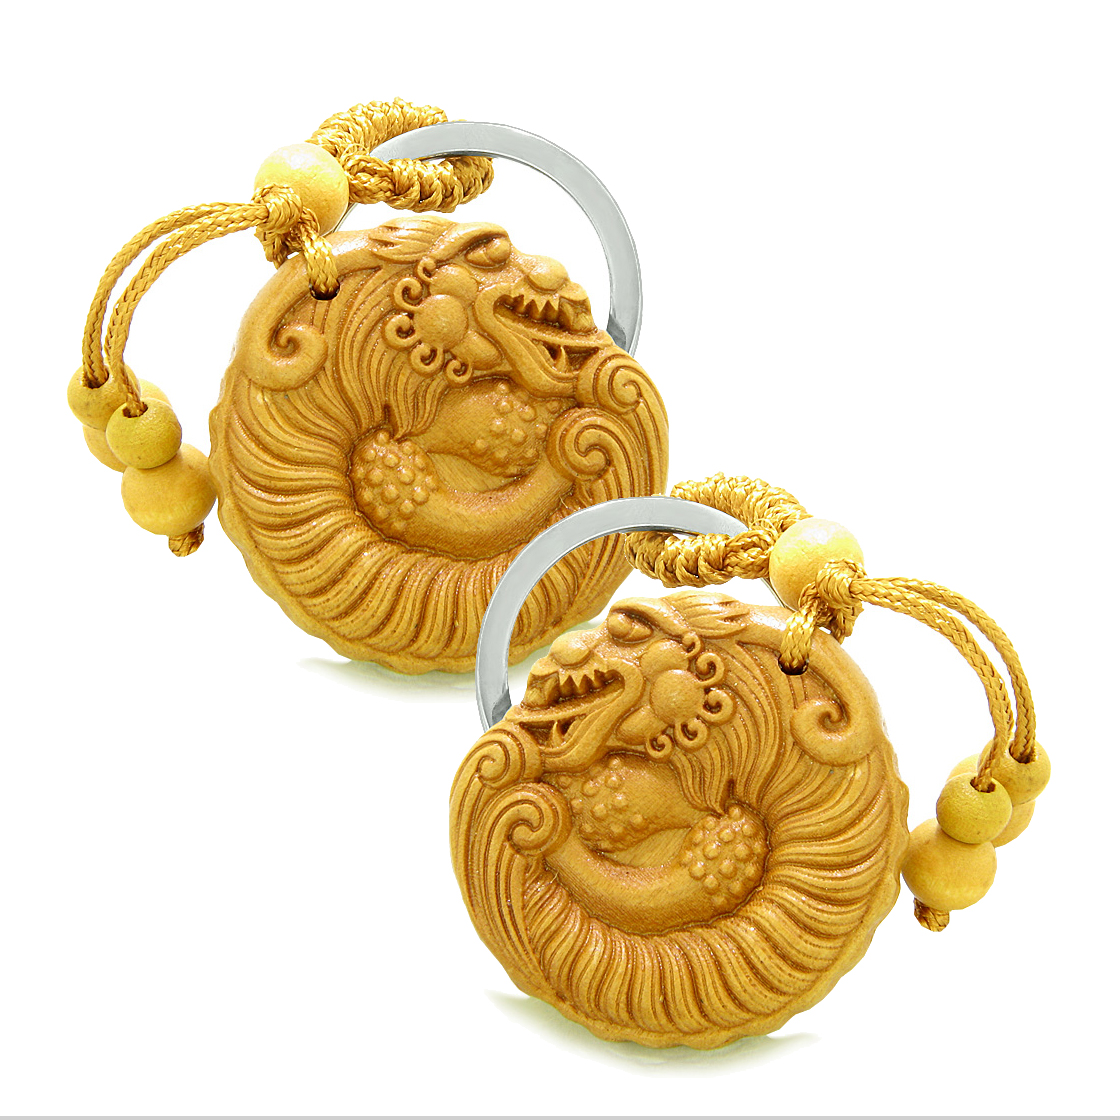 Sandal Wood Feng Shui Keychains Amulet Courage Magical Dragon Good